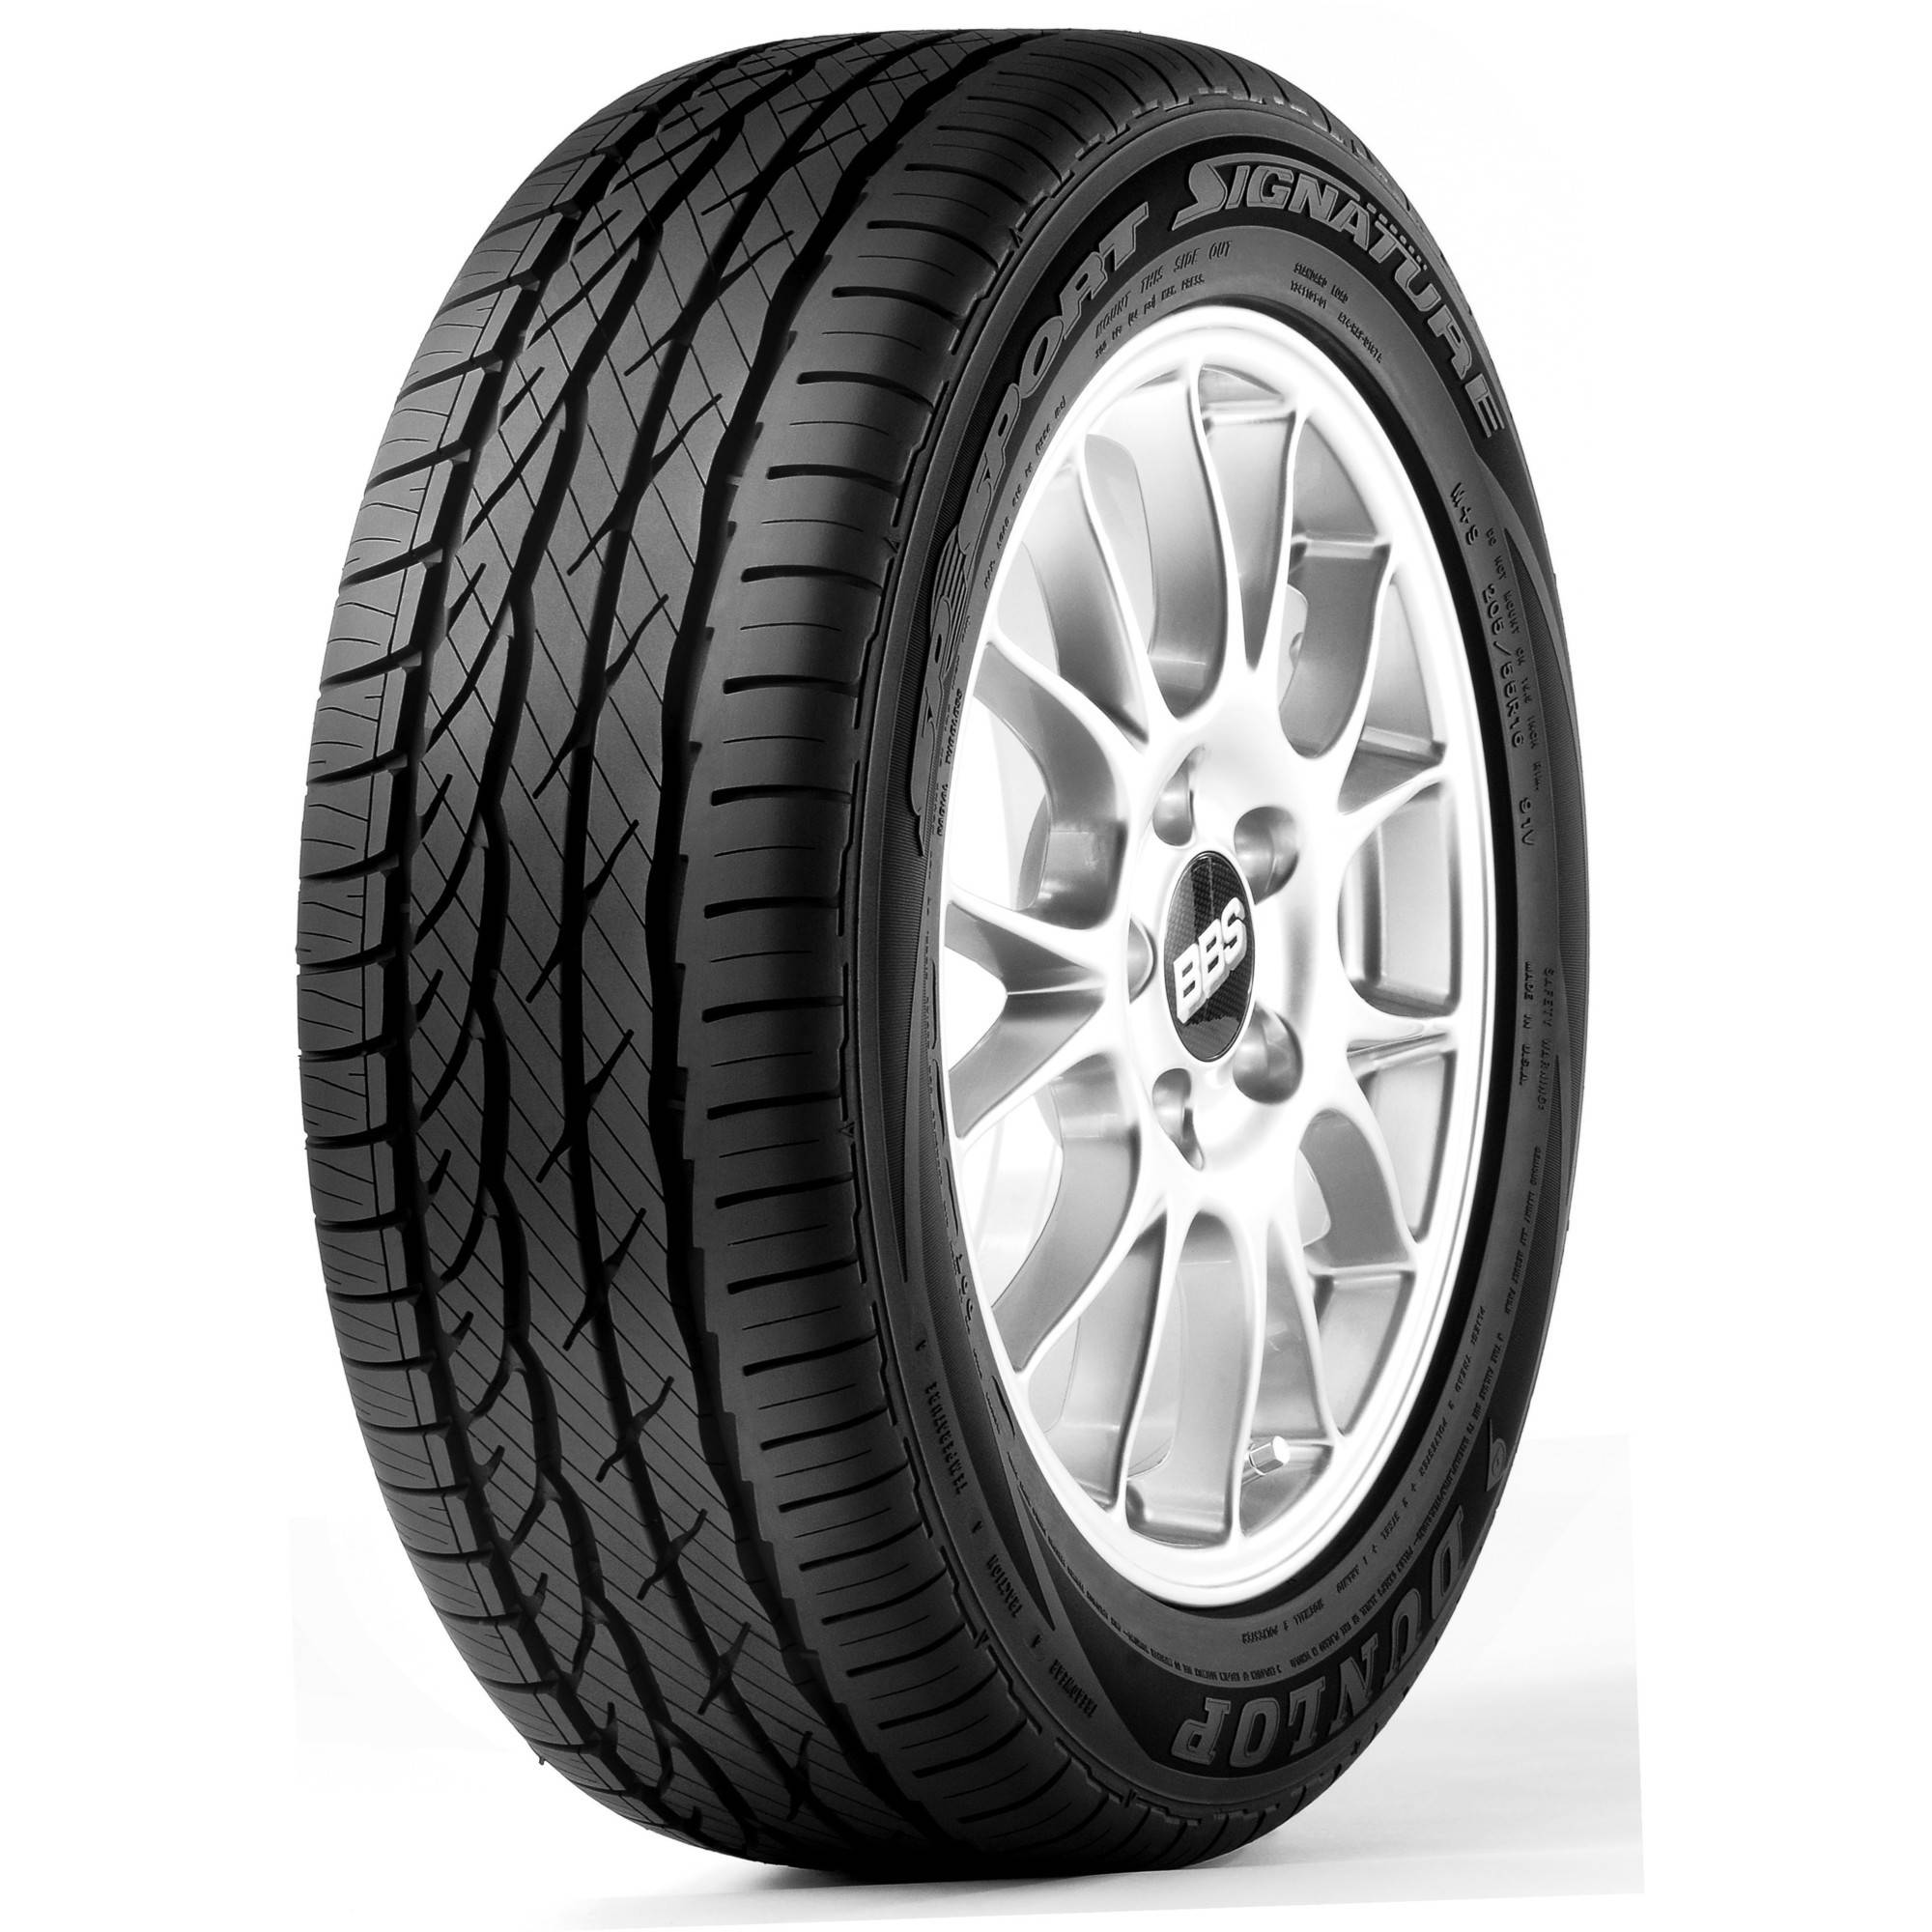 Dunlop SP Sport Signature Tire 225/50R17  94W